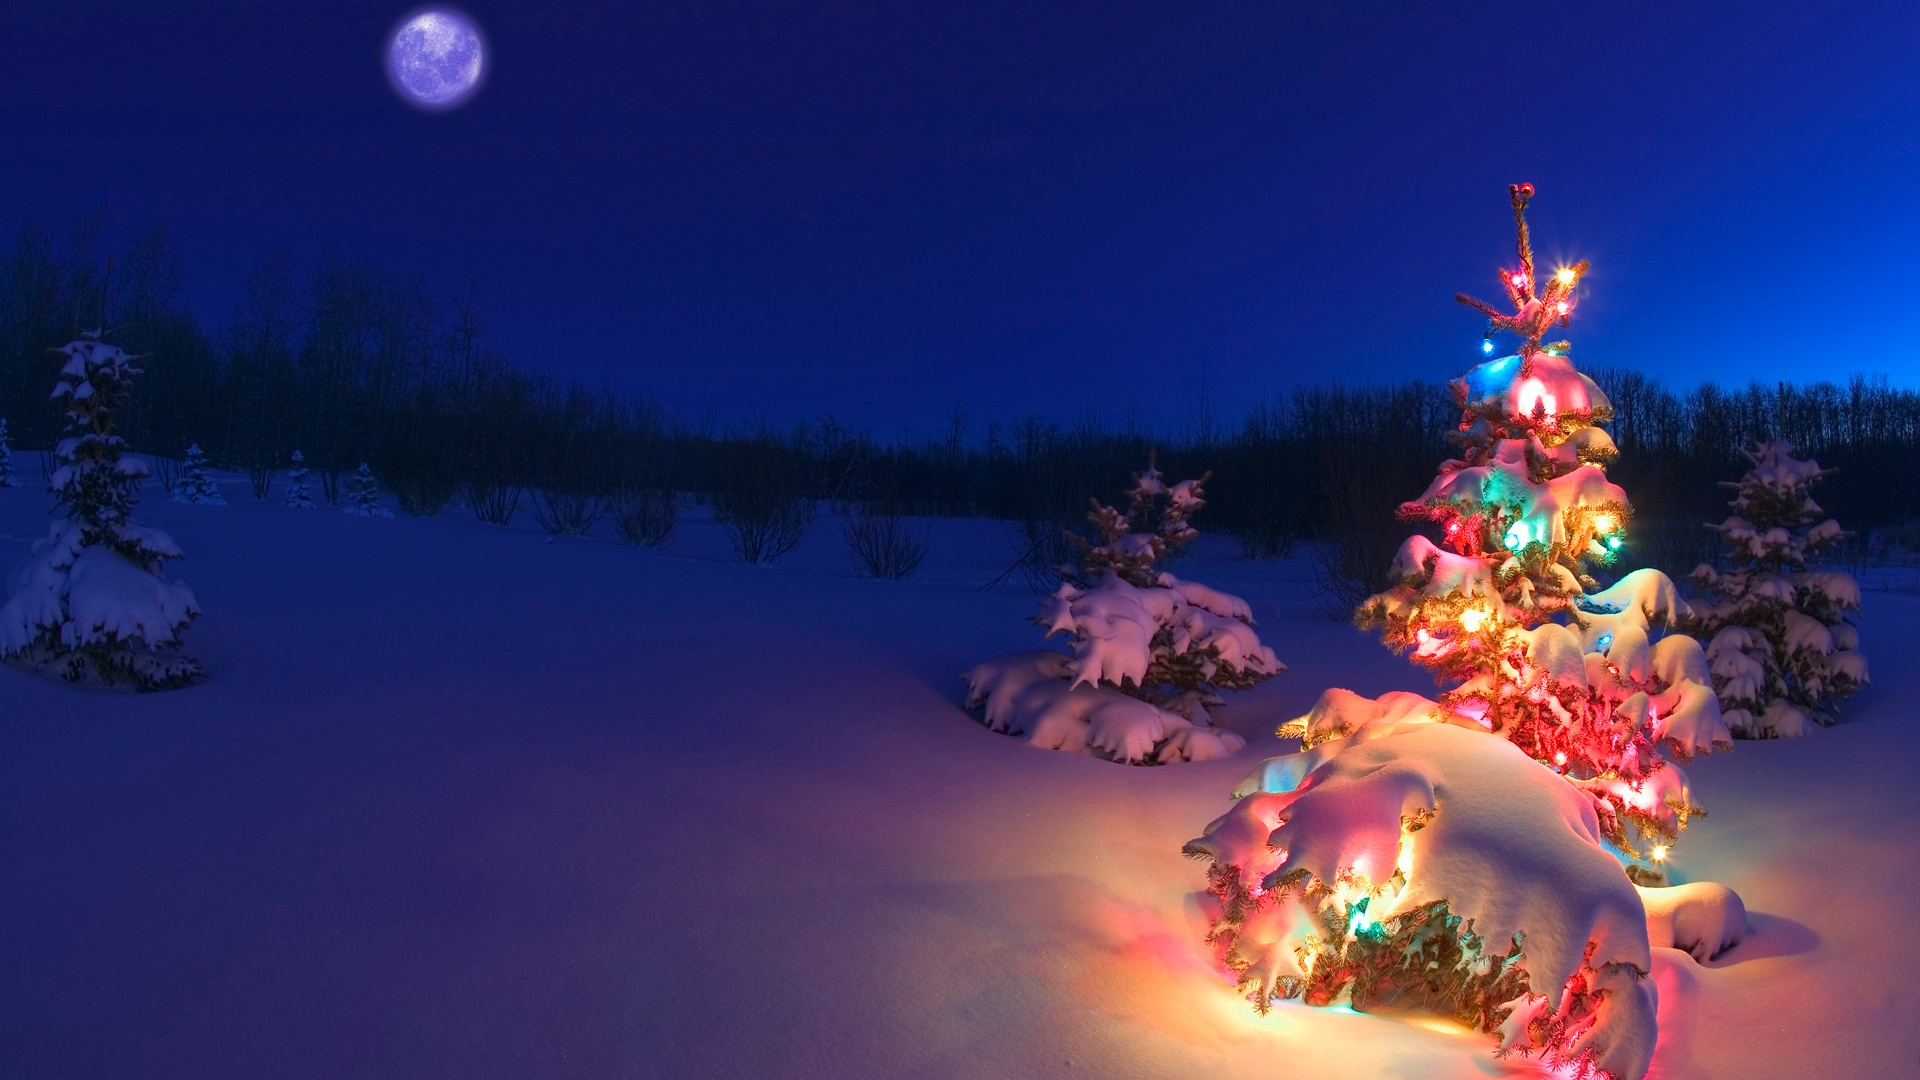 Christmas HD wallpaper for download in laptop